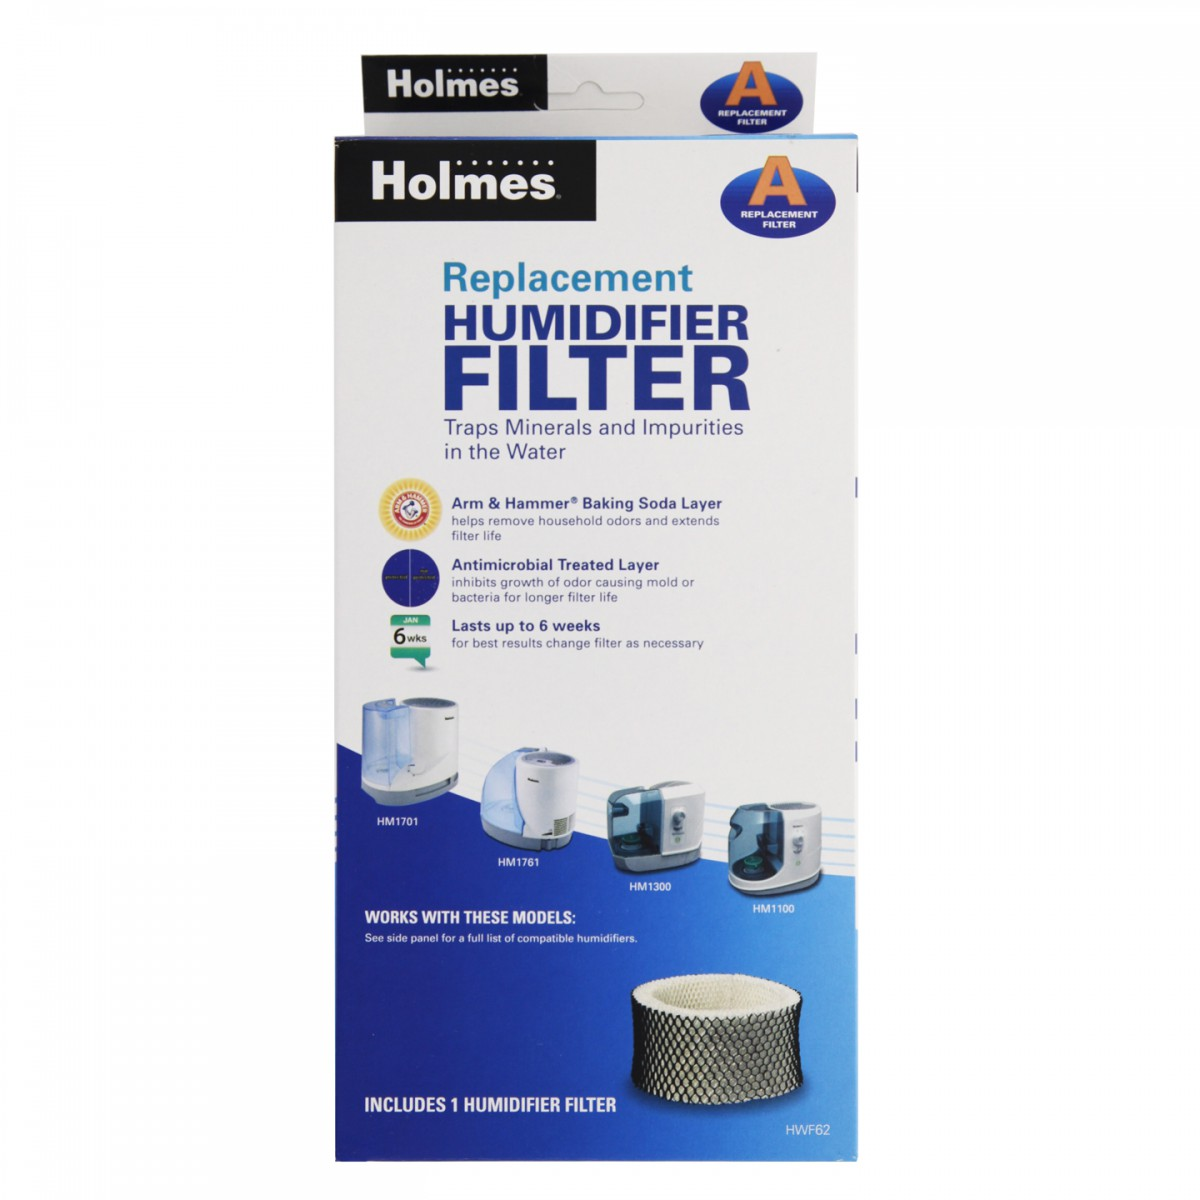 Humidifier Filter for Holmes Halls and Family Care humidifiers #2348A8